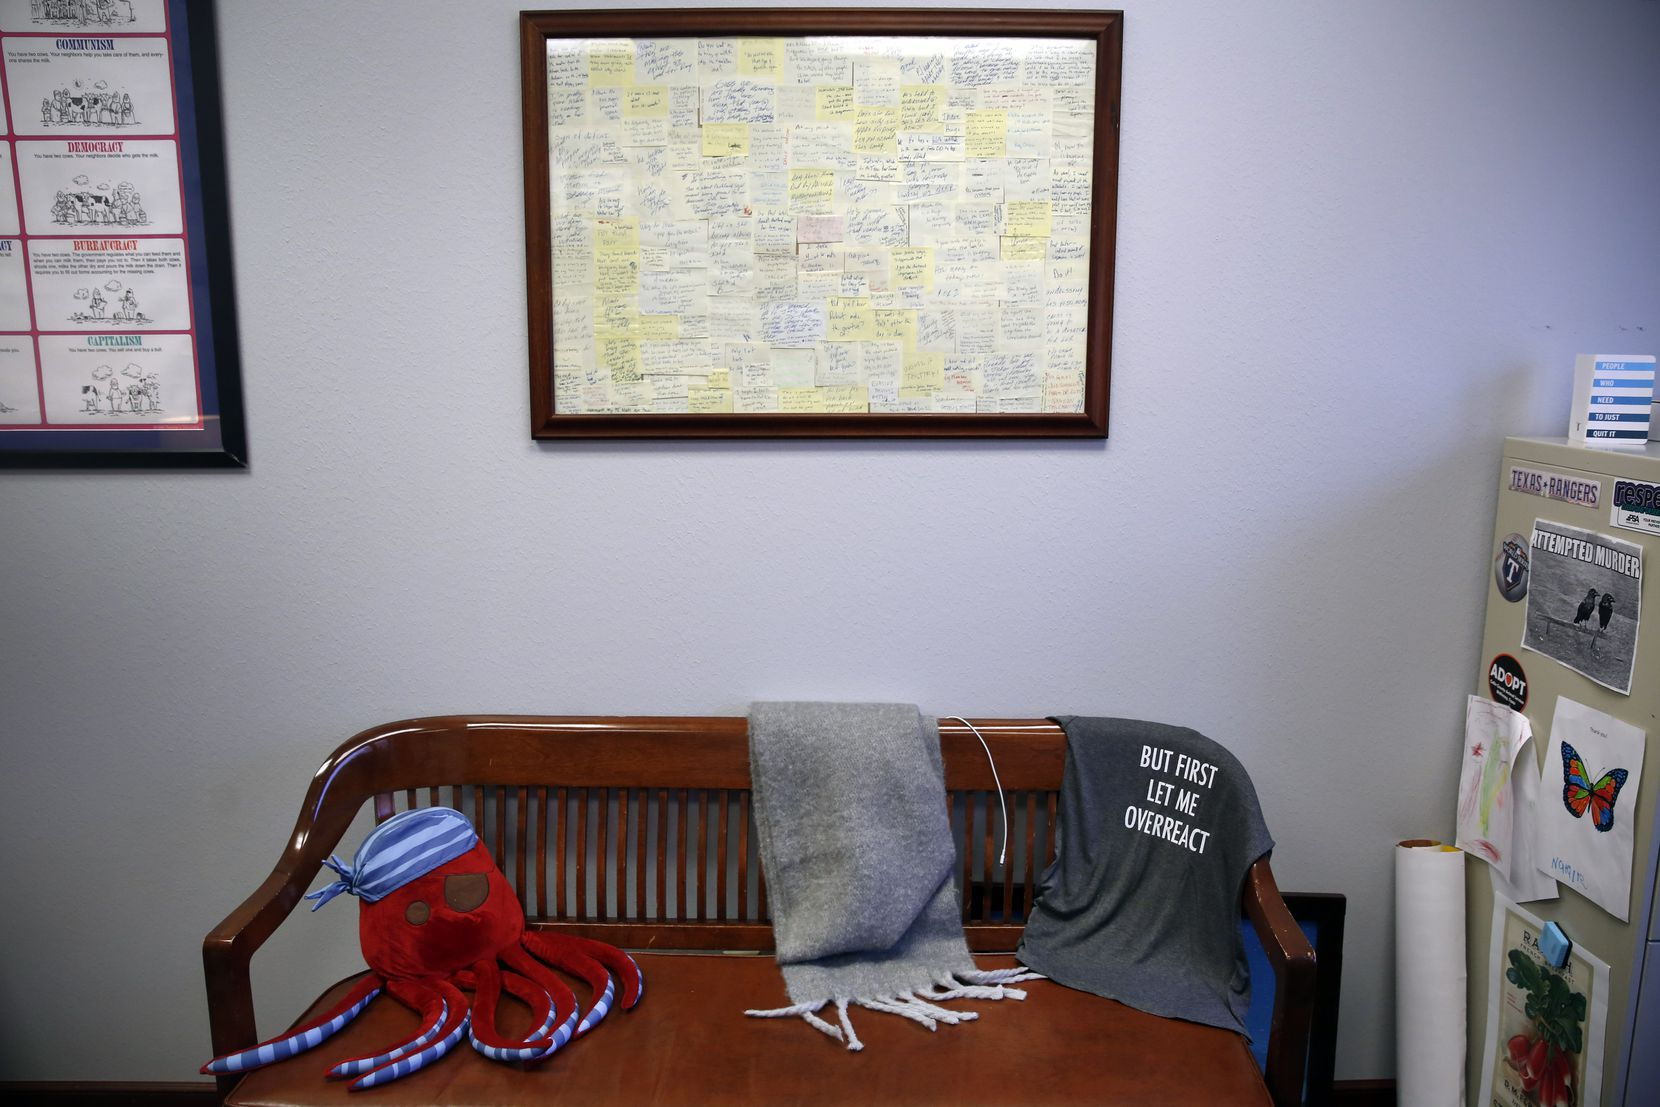 """Nicole Dana's office includes her """"therapy bench,"""" which she admits she took from another office """"by adverse possession"""" and which is regularly used by her colleagues seeking advice. The framed collection of Post-its are notes passed between Nicole and other prosecutors during her first big health-care fraud case."""